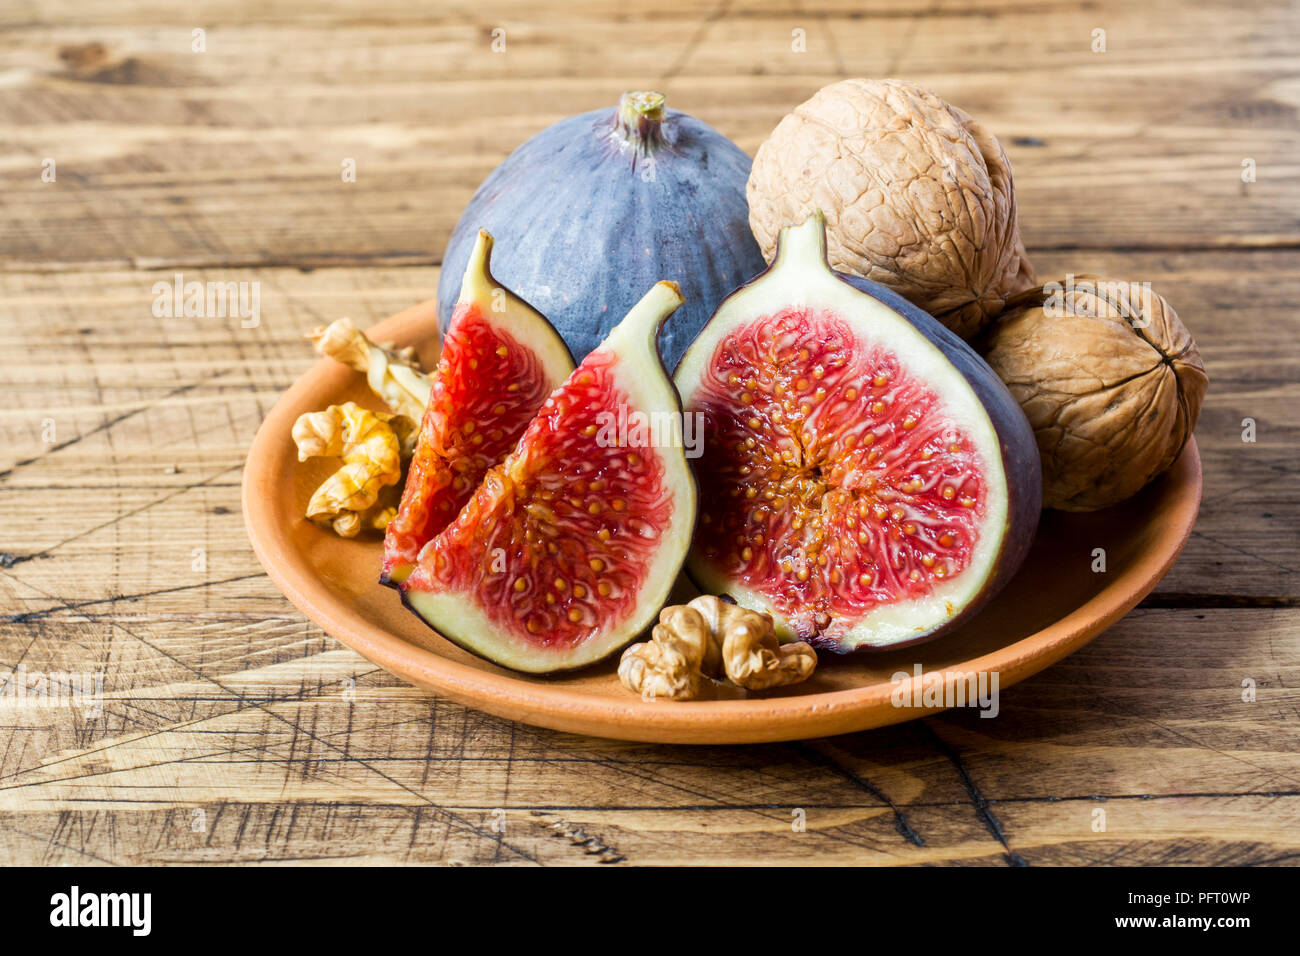 Fresh figs whole and cut kernels of walnuts on a plate the old wooden background - Stock Image